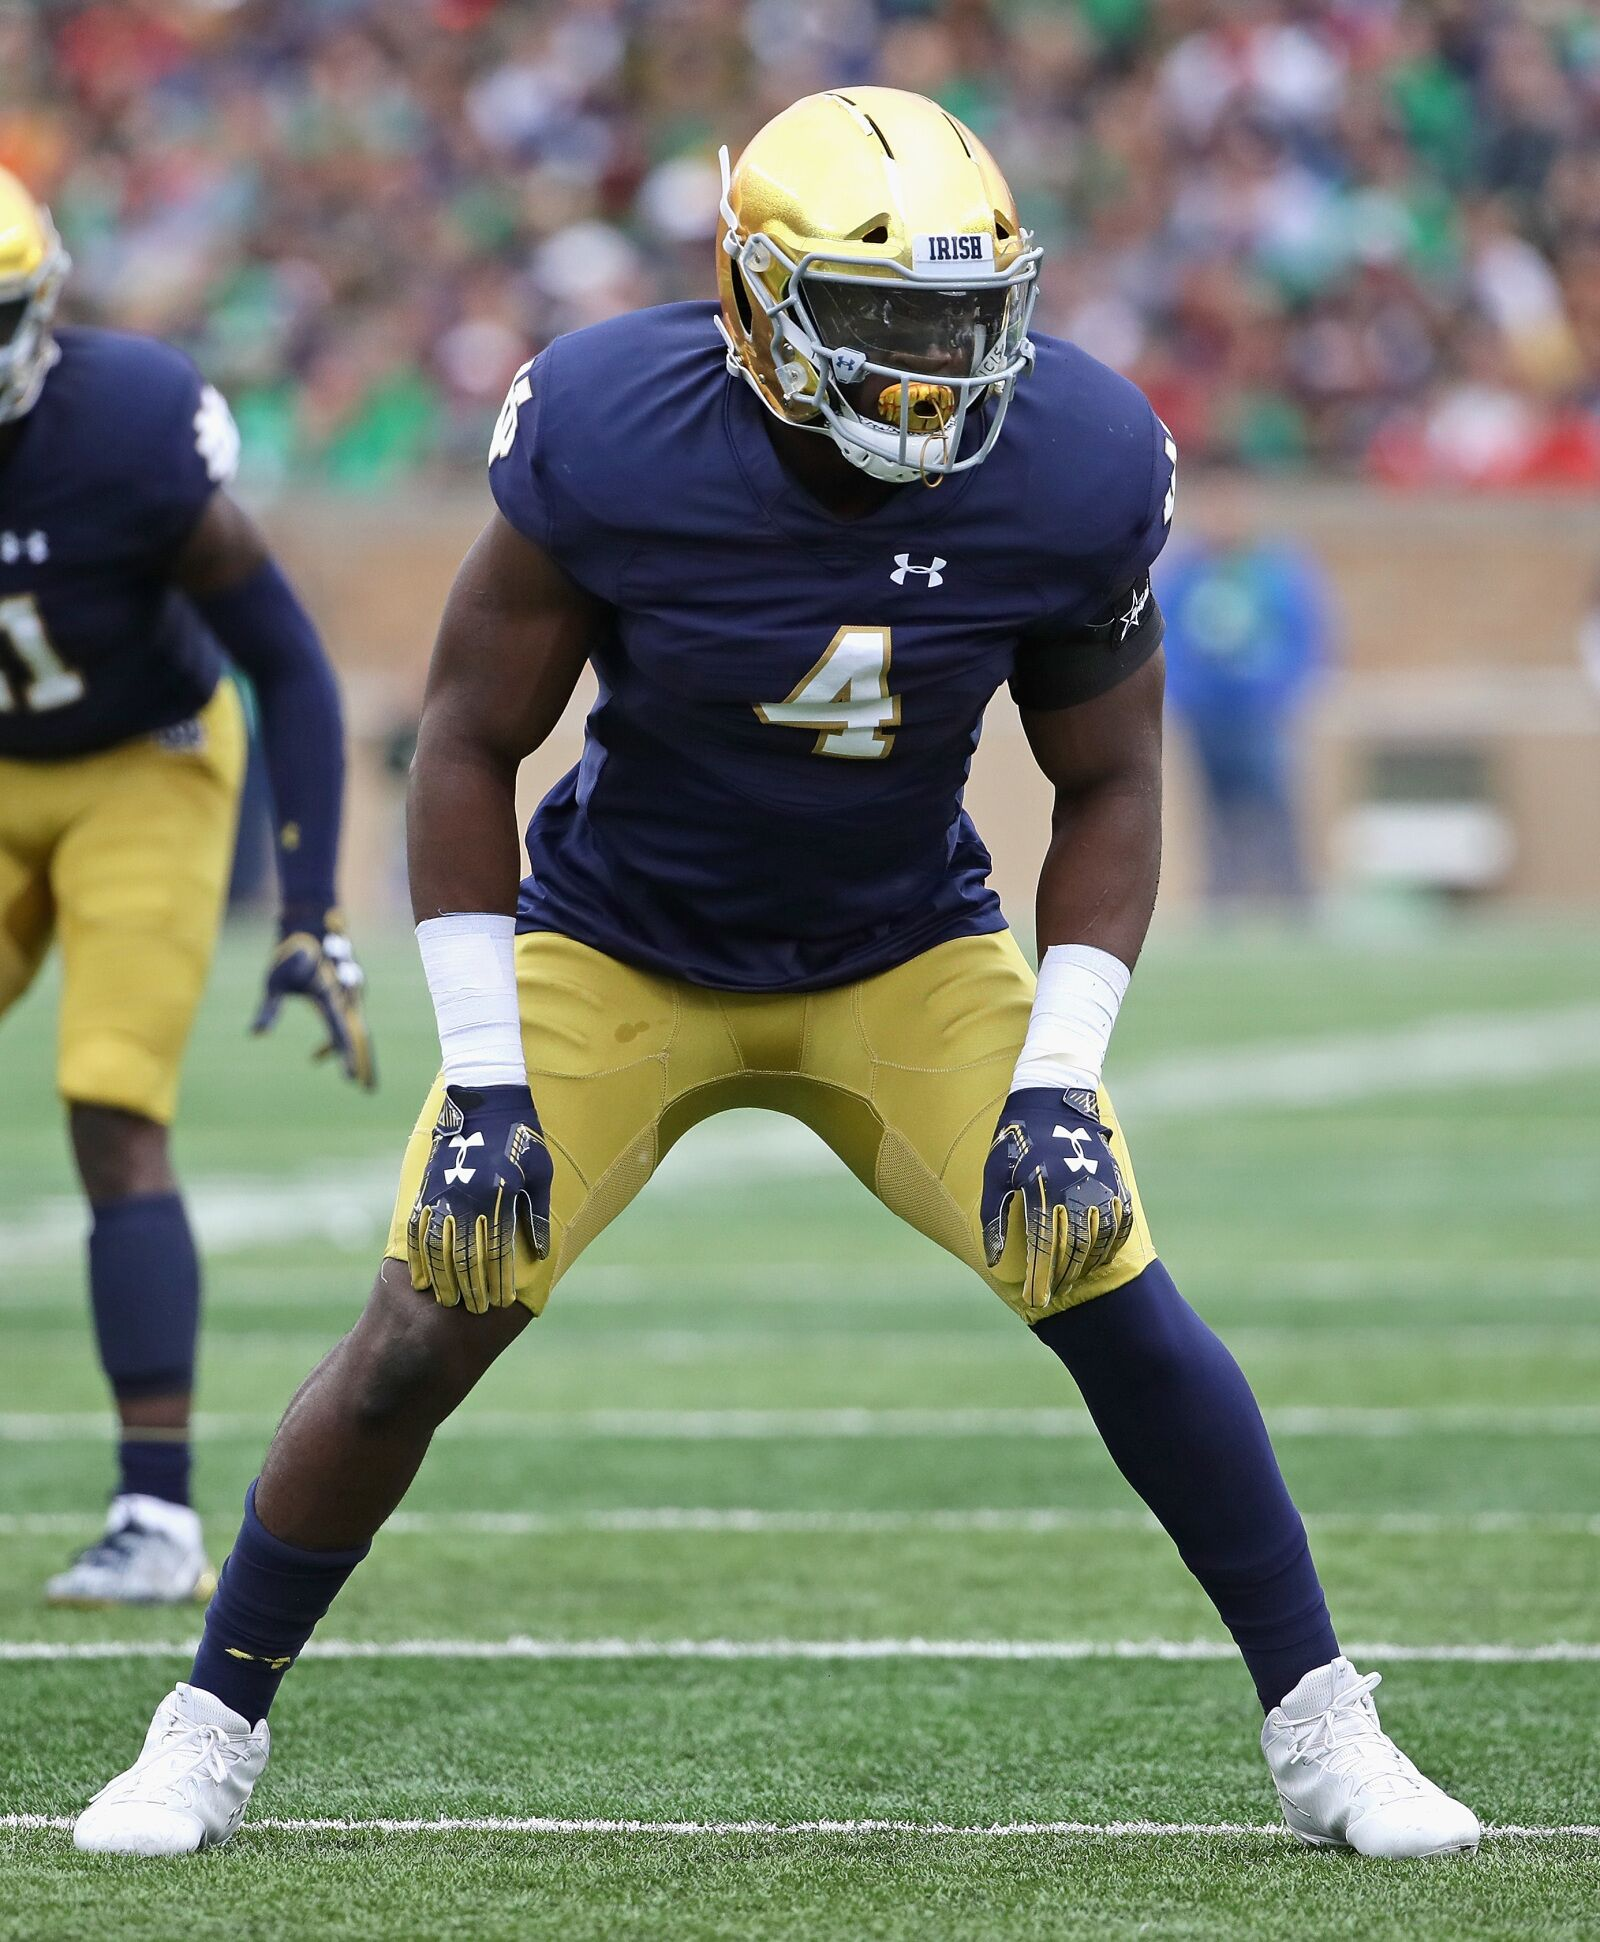 online store c1d57 d97fc Notre Dame Football: Te'Von Coney is Defensive Play of the ...